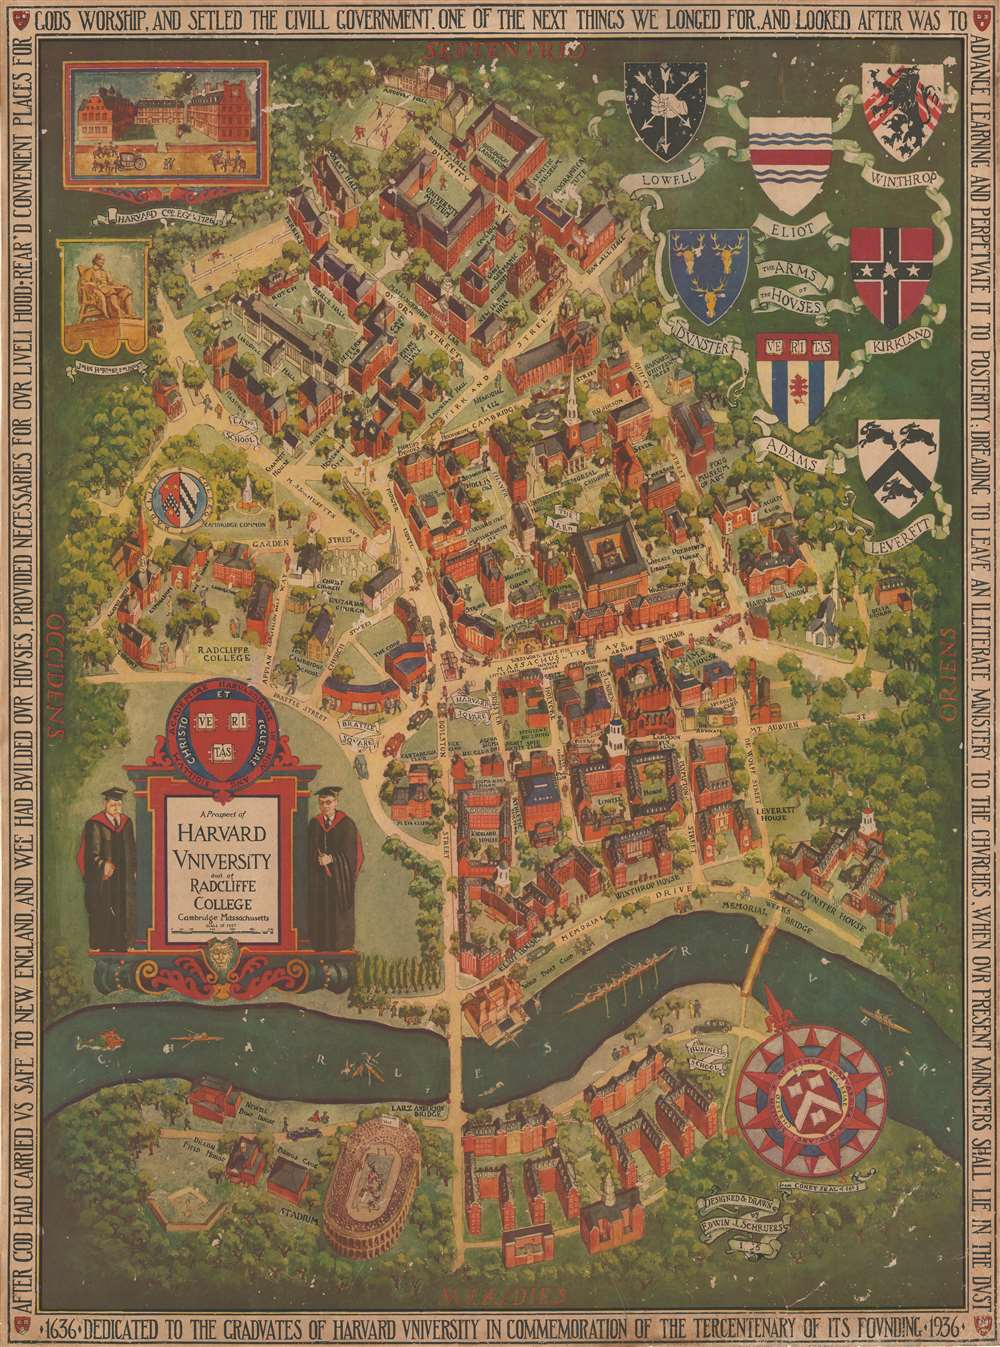 1935 Schruers Pictorial Map of Harvard University